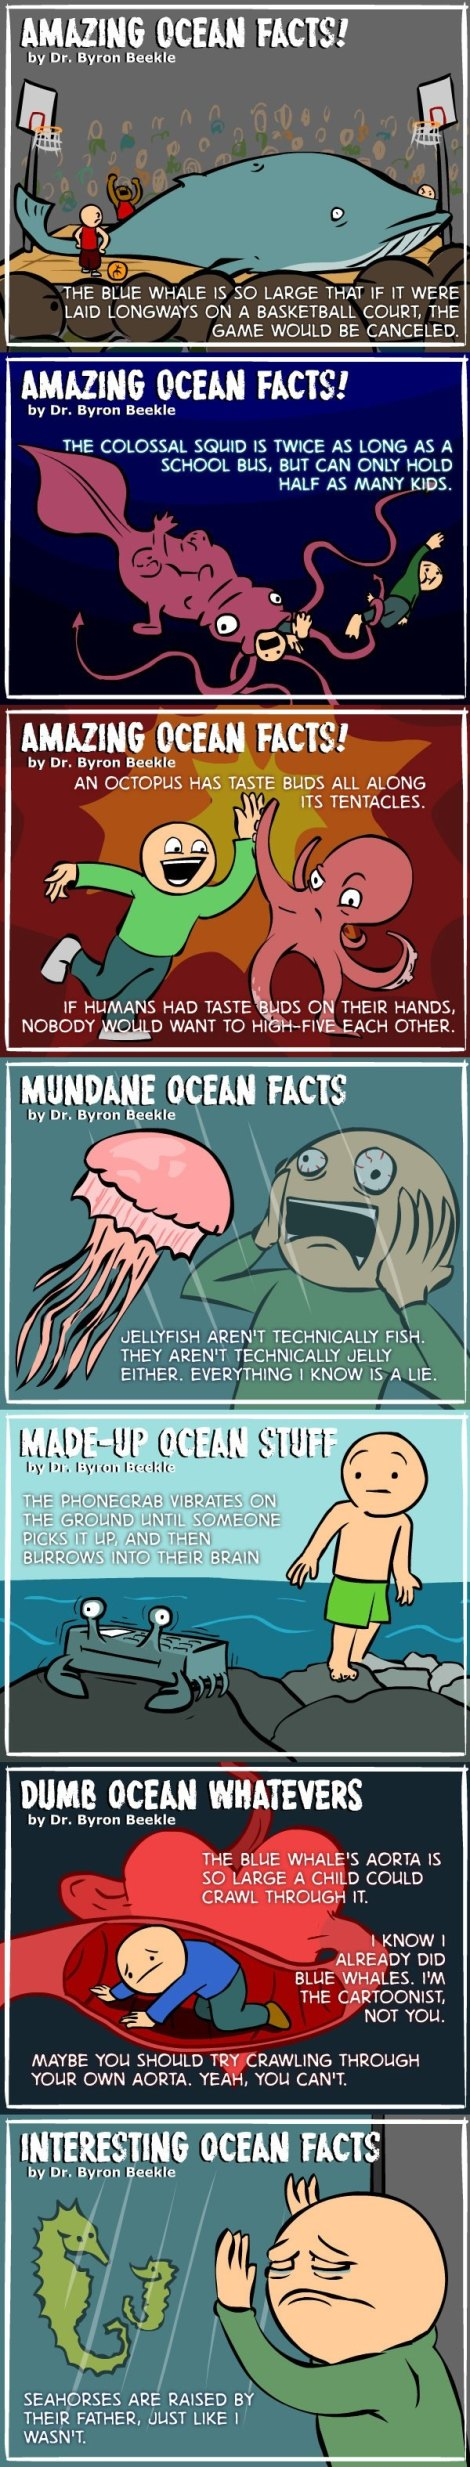 600_real-ocean-facts-broaden-your-mi